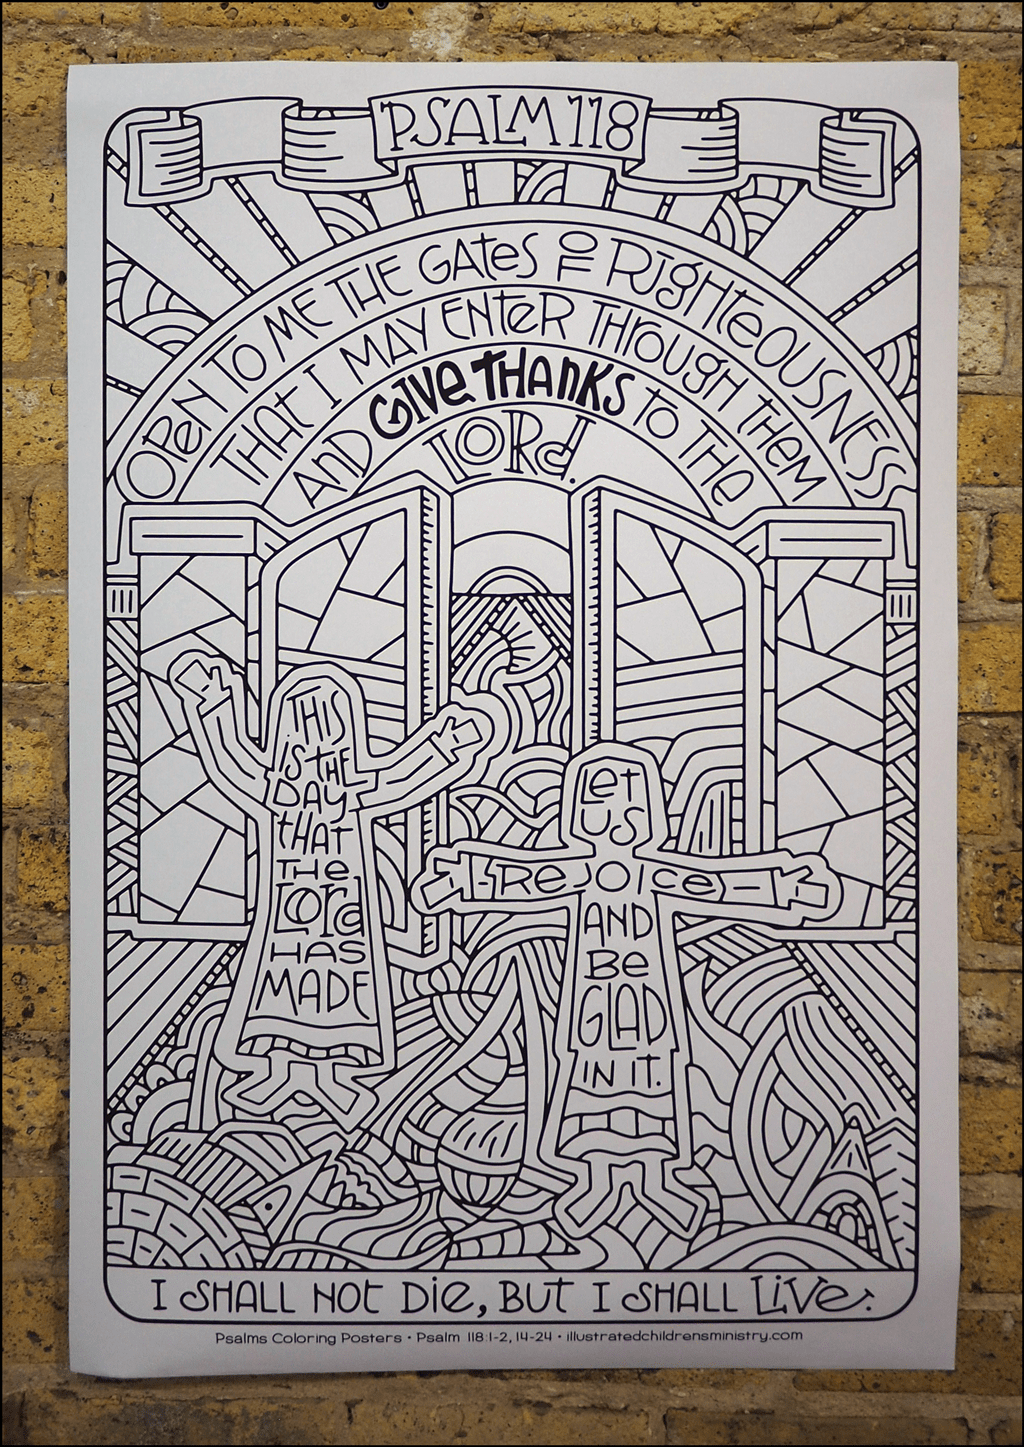 Psalms coloring poster - I shall not die, but I shall live